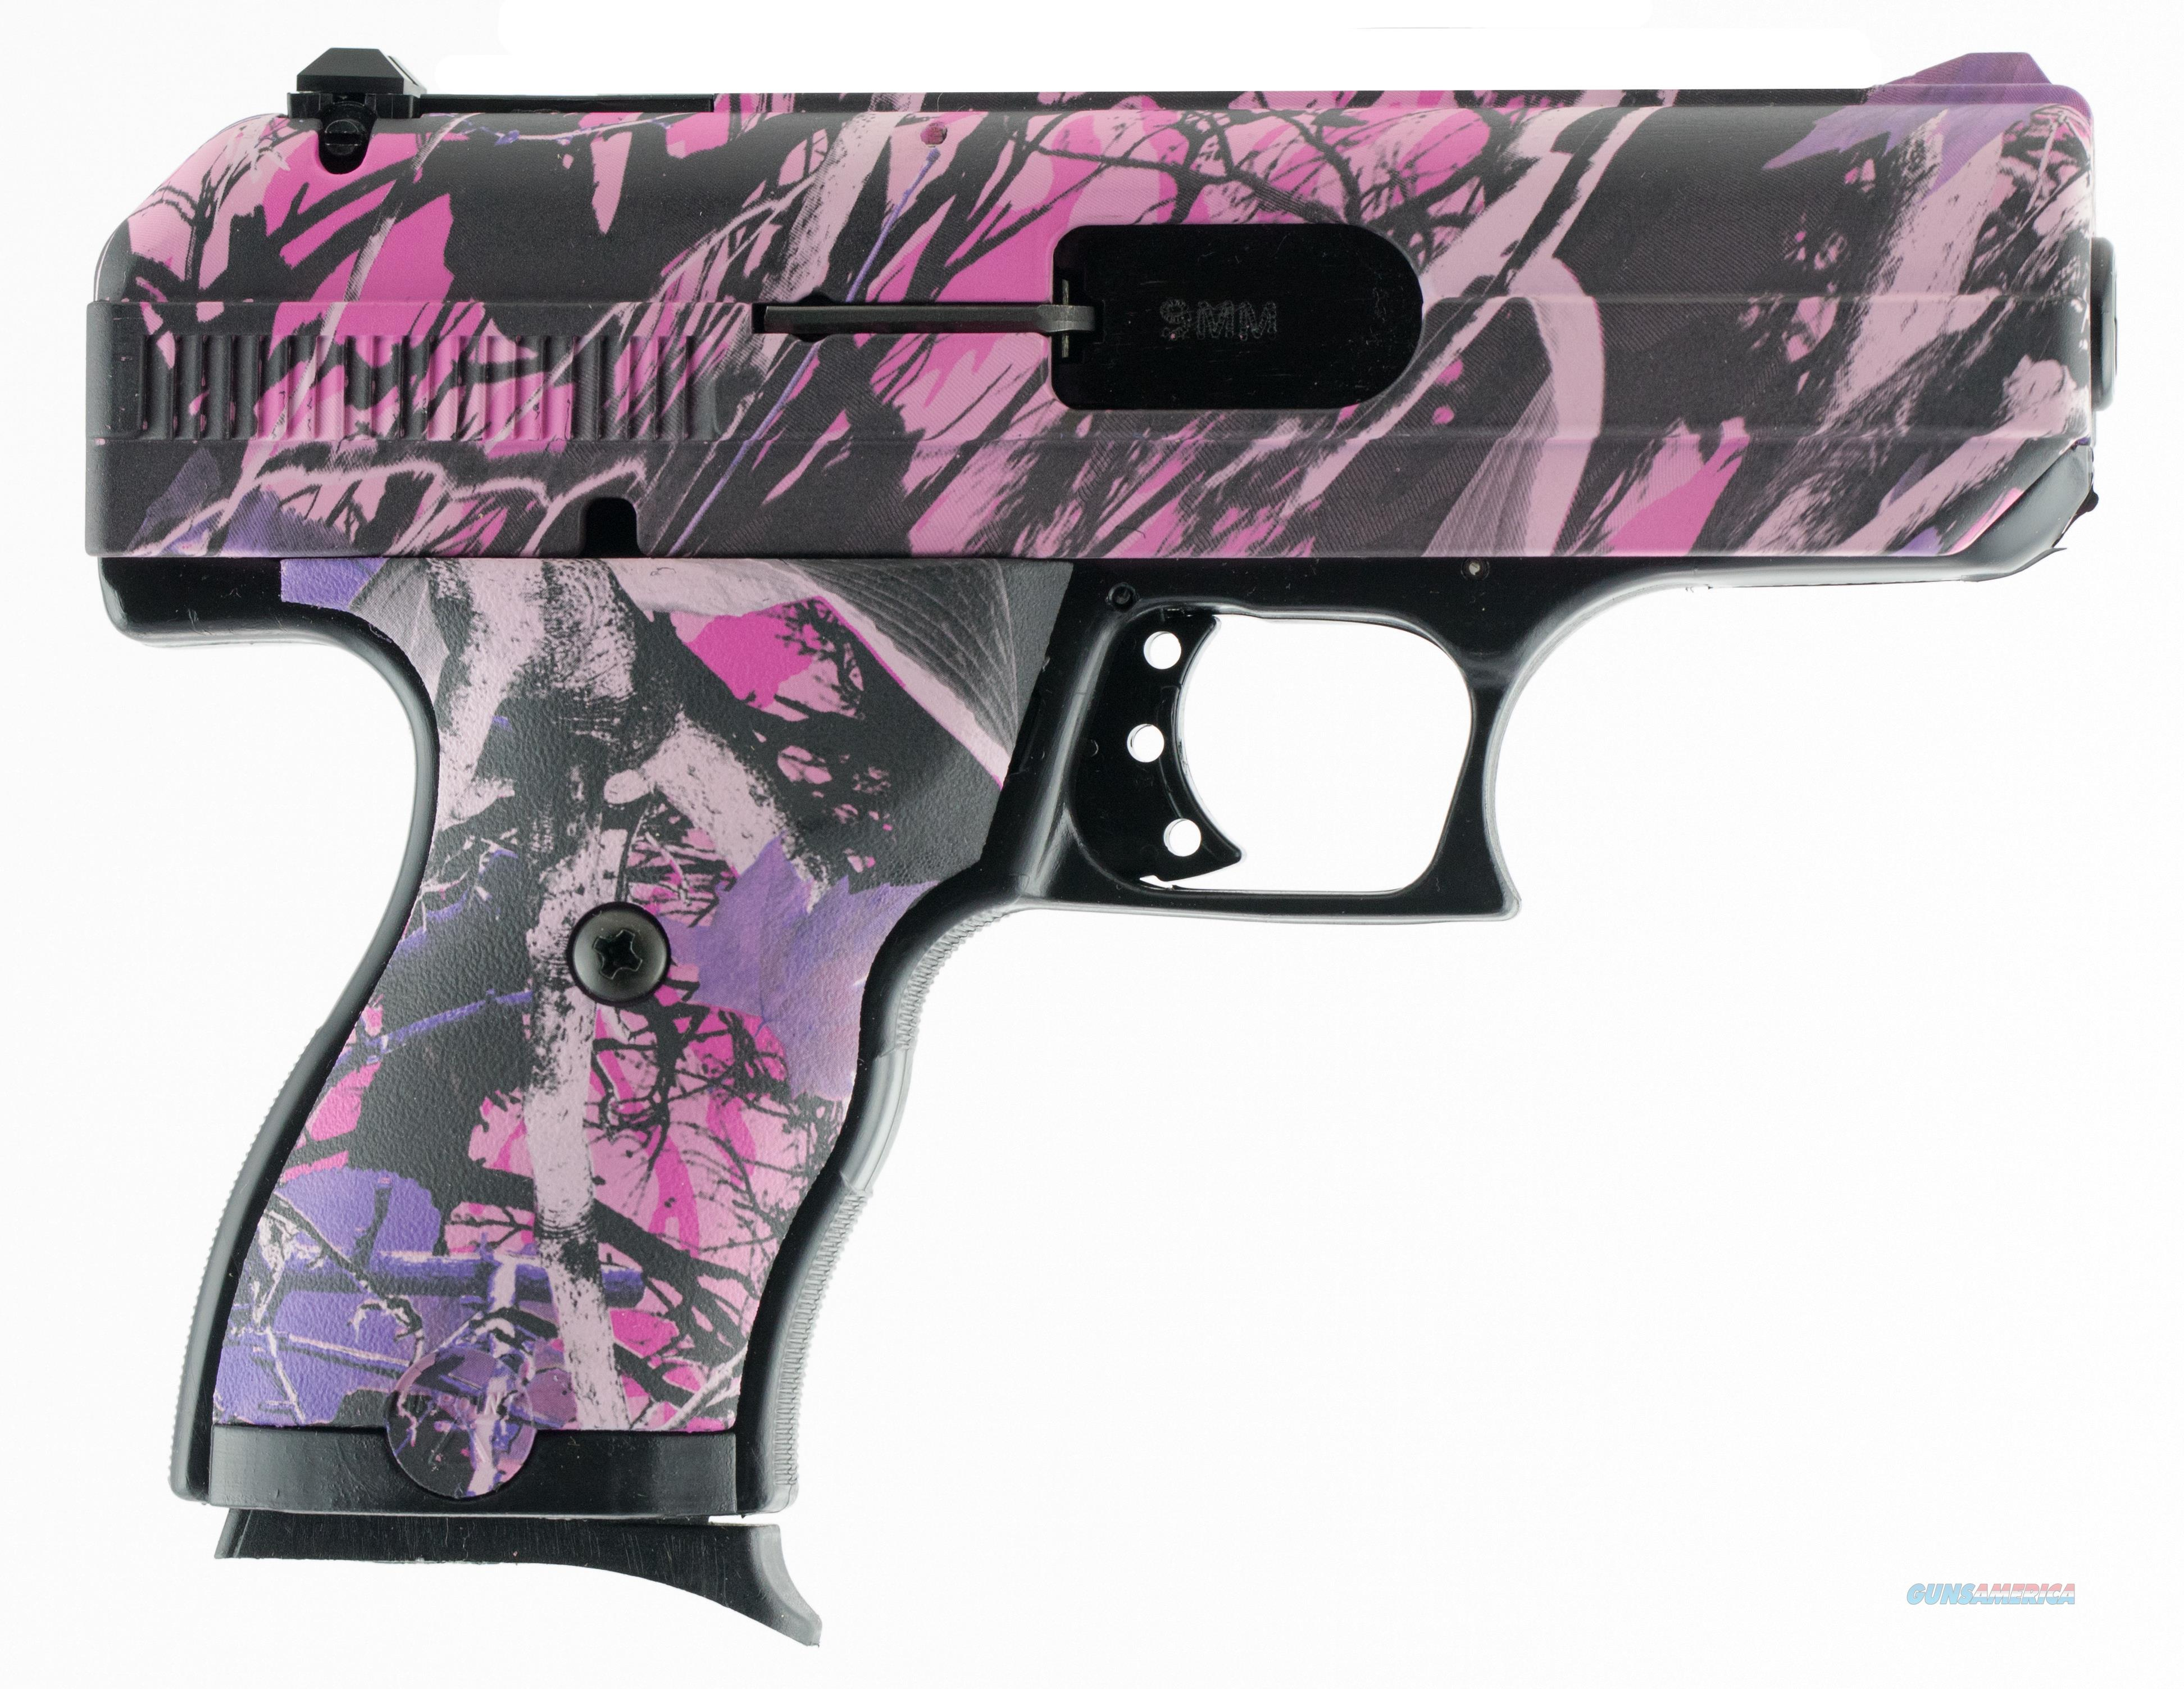 "HIPOINT C-9 9MM 3.5"" 8RD S/A CAMO 916 PI  Guns > Pistols > Hi Point Pistols"